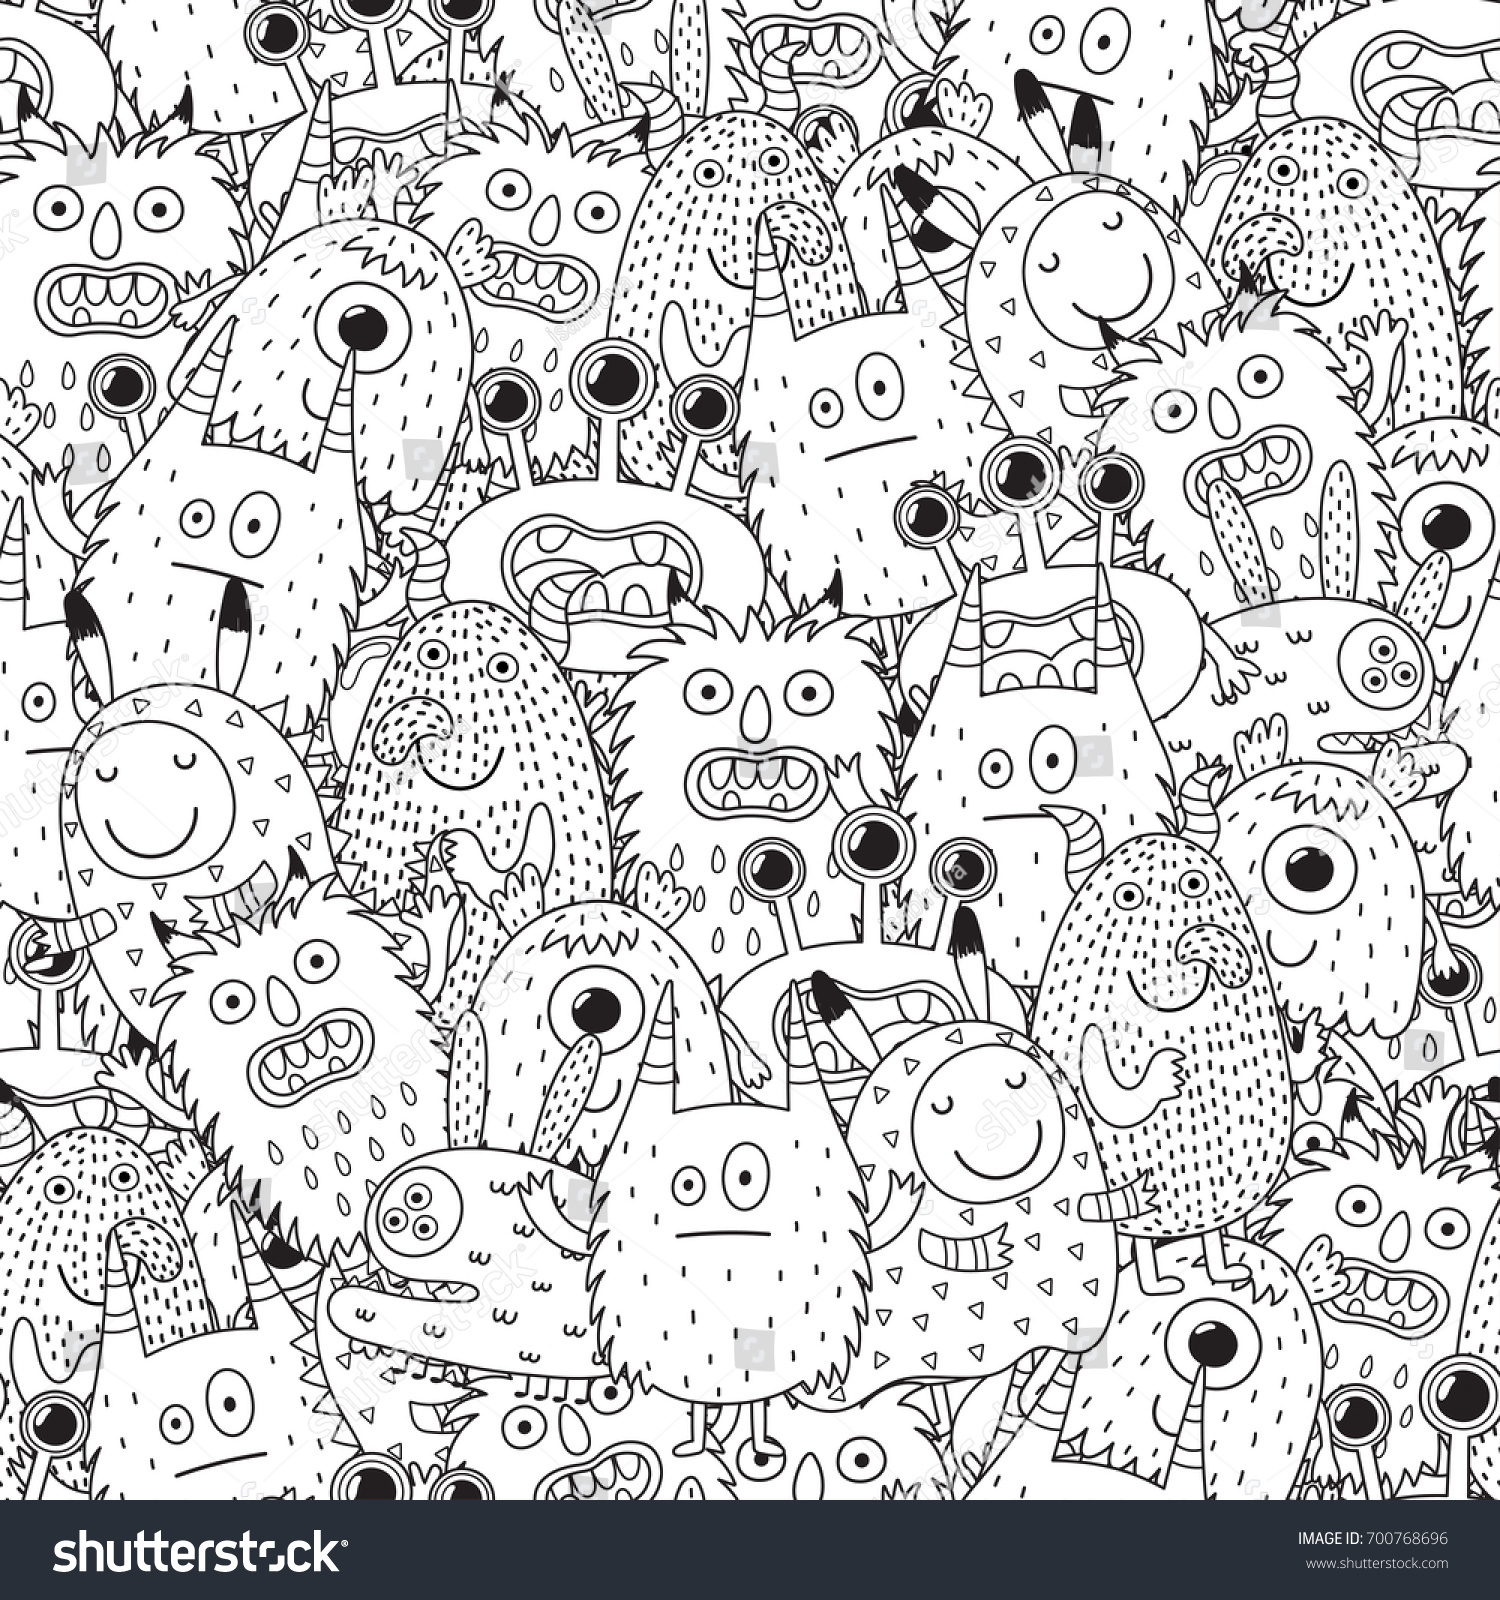 Funny Monsters Seamless Pattern Coloring Book Stock Vector ...